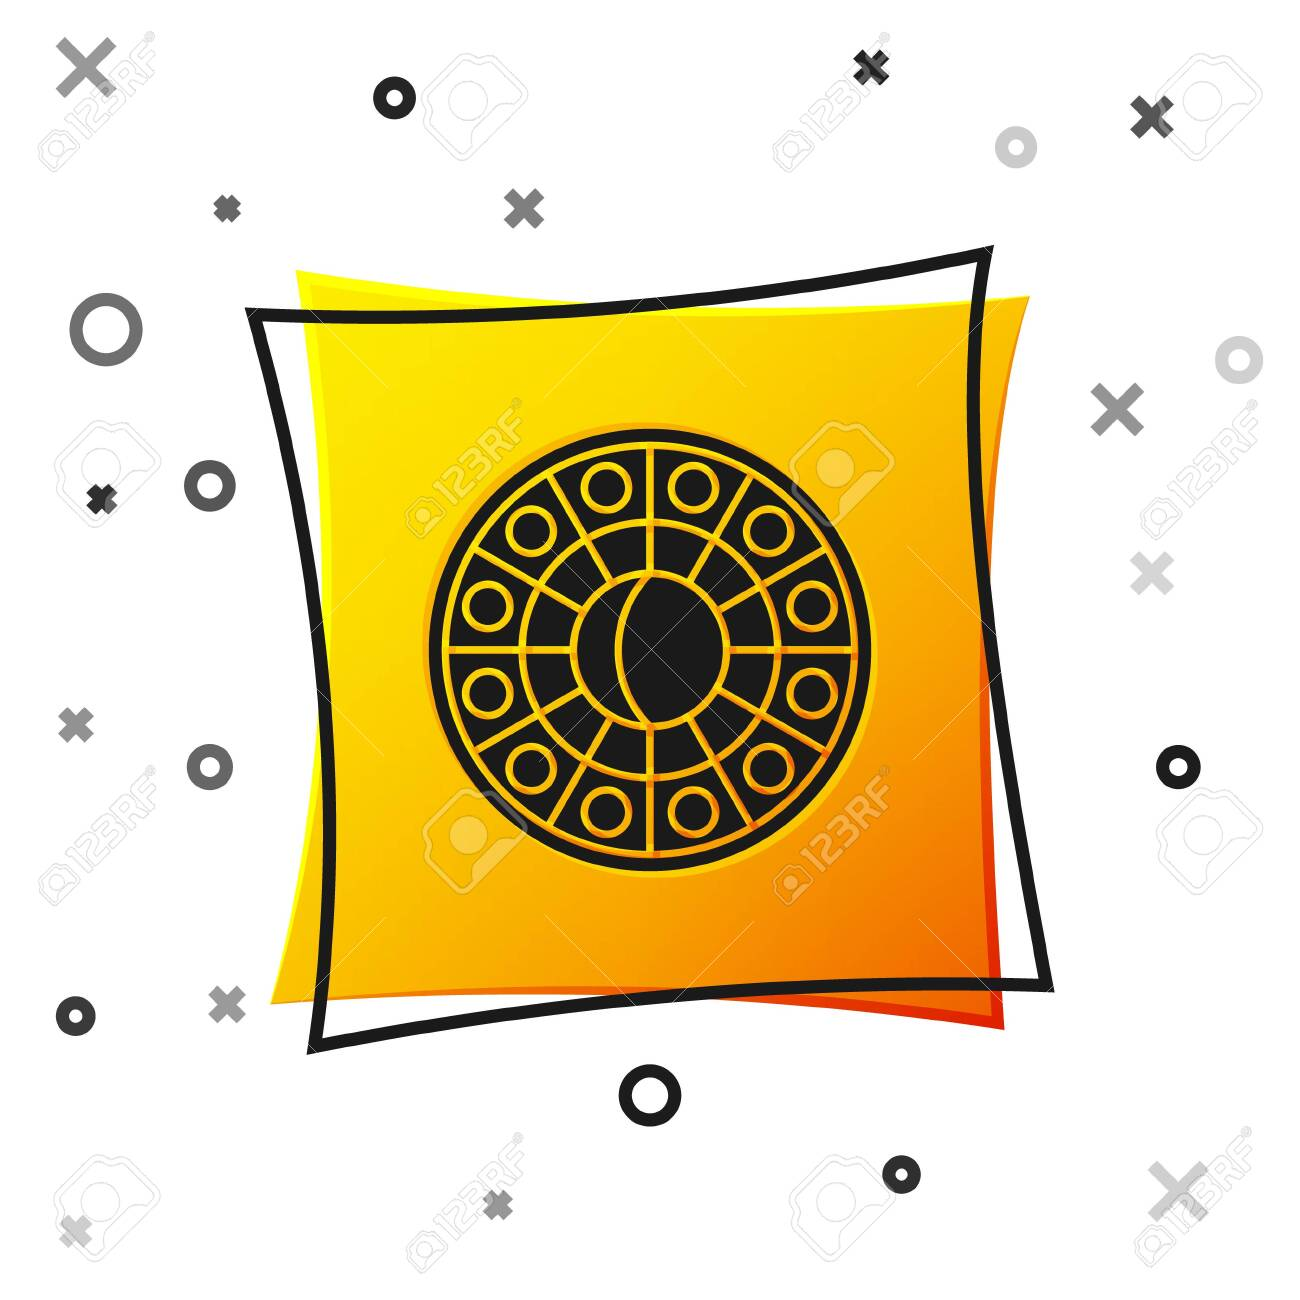 Black Astrology Horoscope Circle With Zodiac Icon Isolated On Royalty Free Cliparts Vectors And Stock Illustration Image 138498632